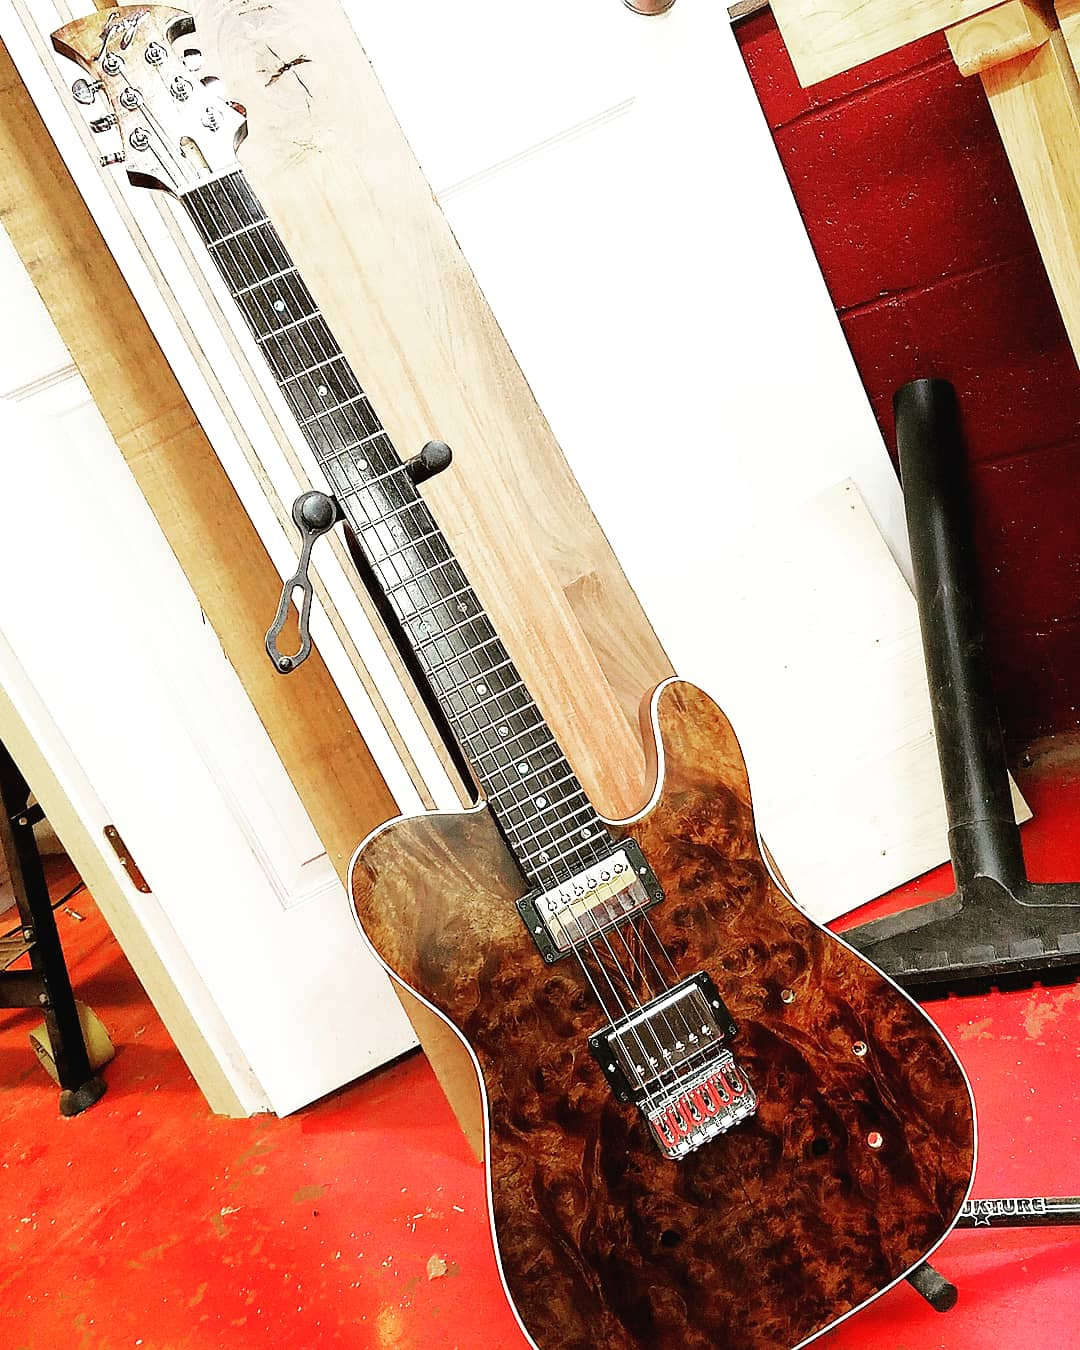 Custom guitar work from Sean Ferry by his custom guitar business Frey Customs